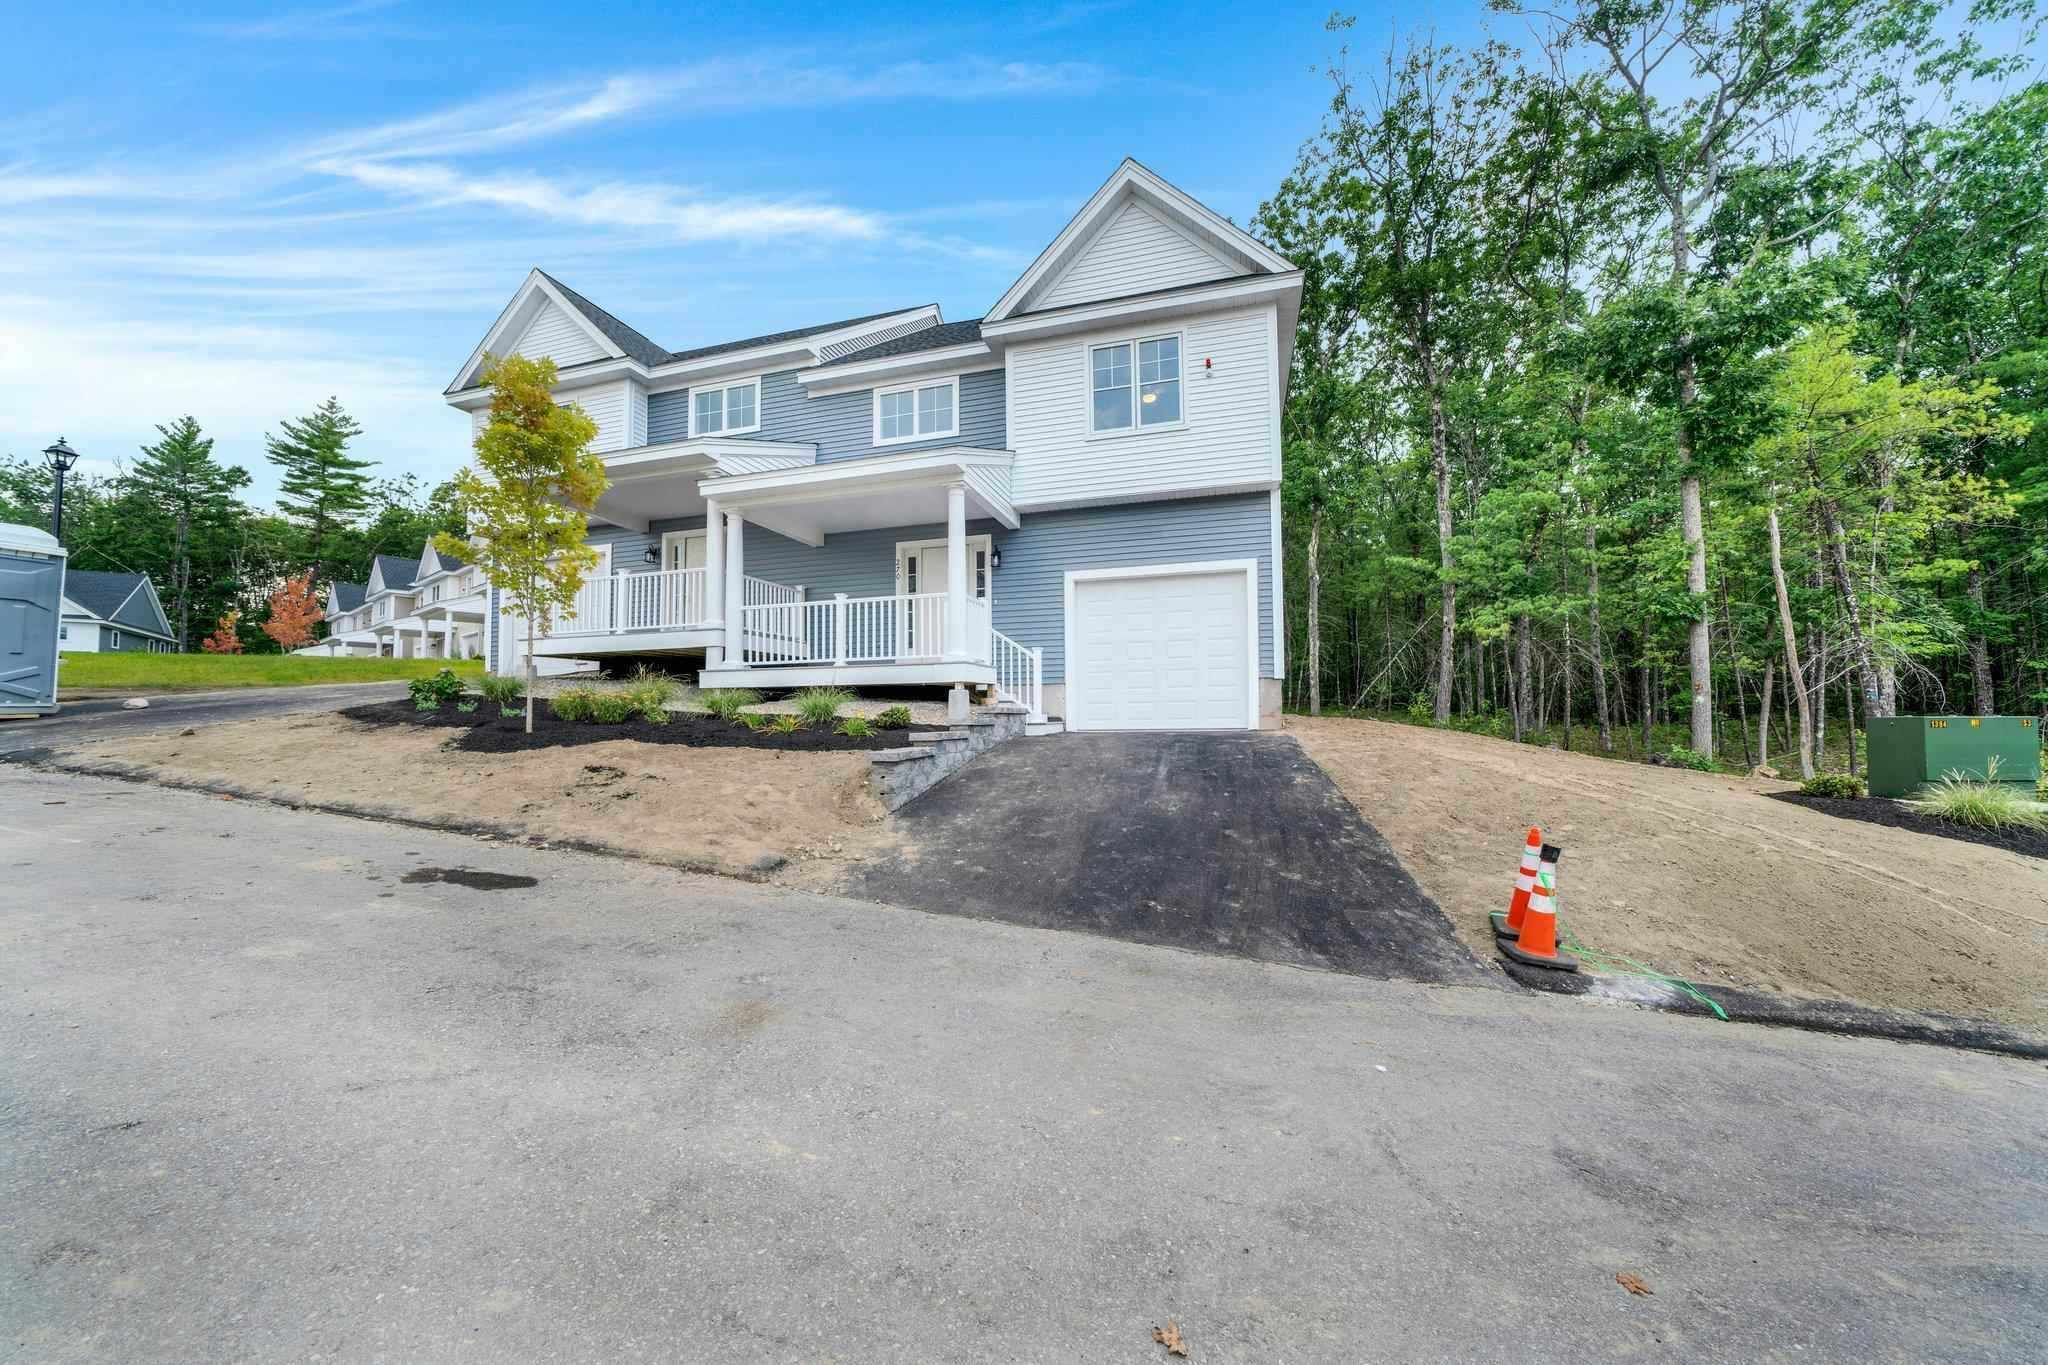 Photo of 270 Knollwood Way Manchester NH 03102